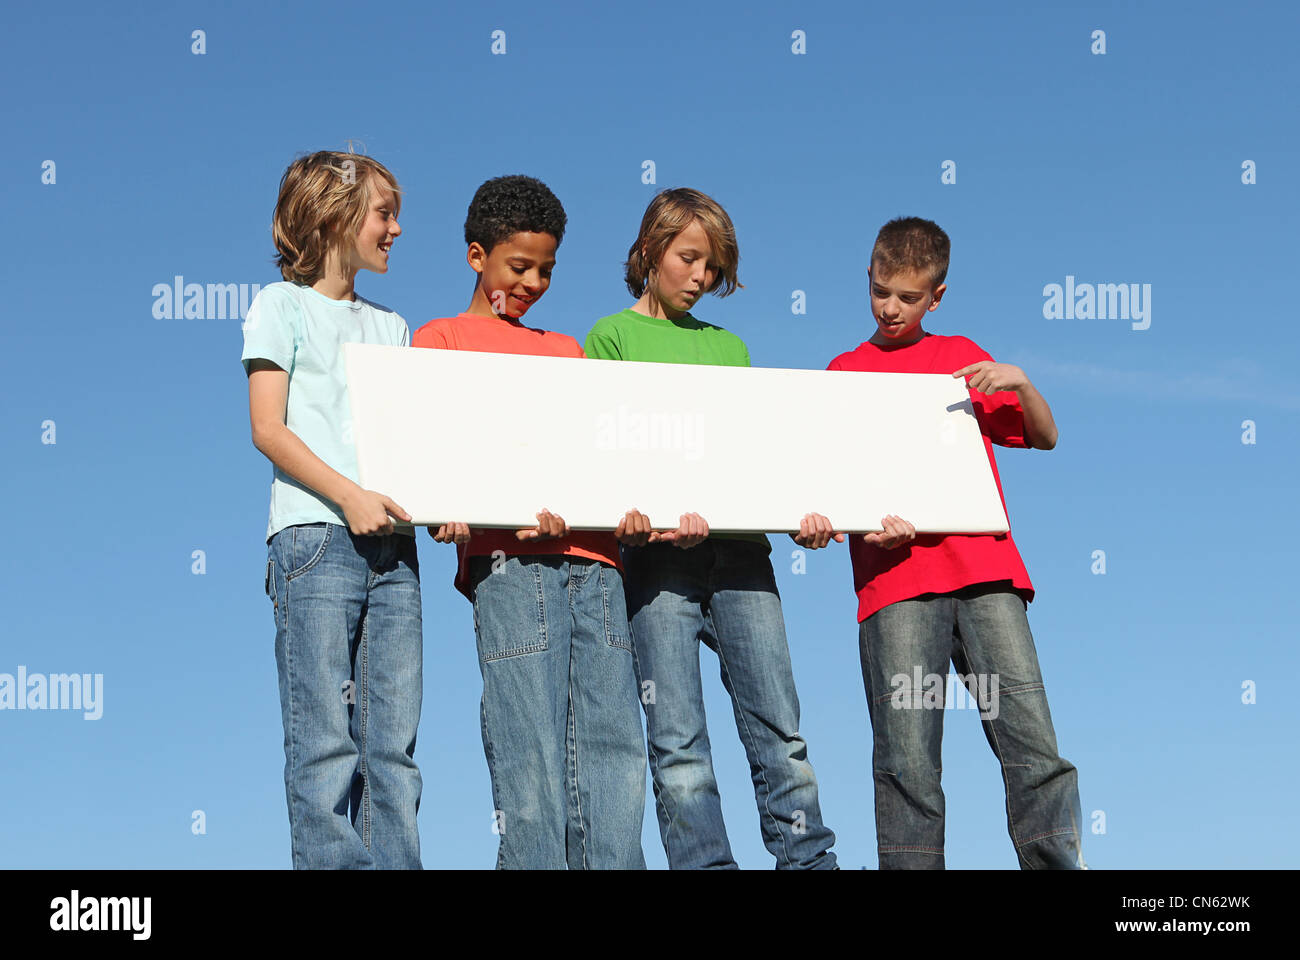 group of diverse kids holding white sign - Stock Image